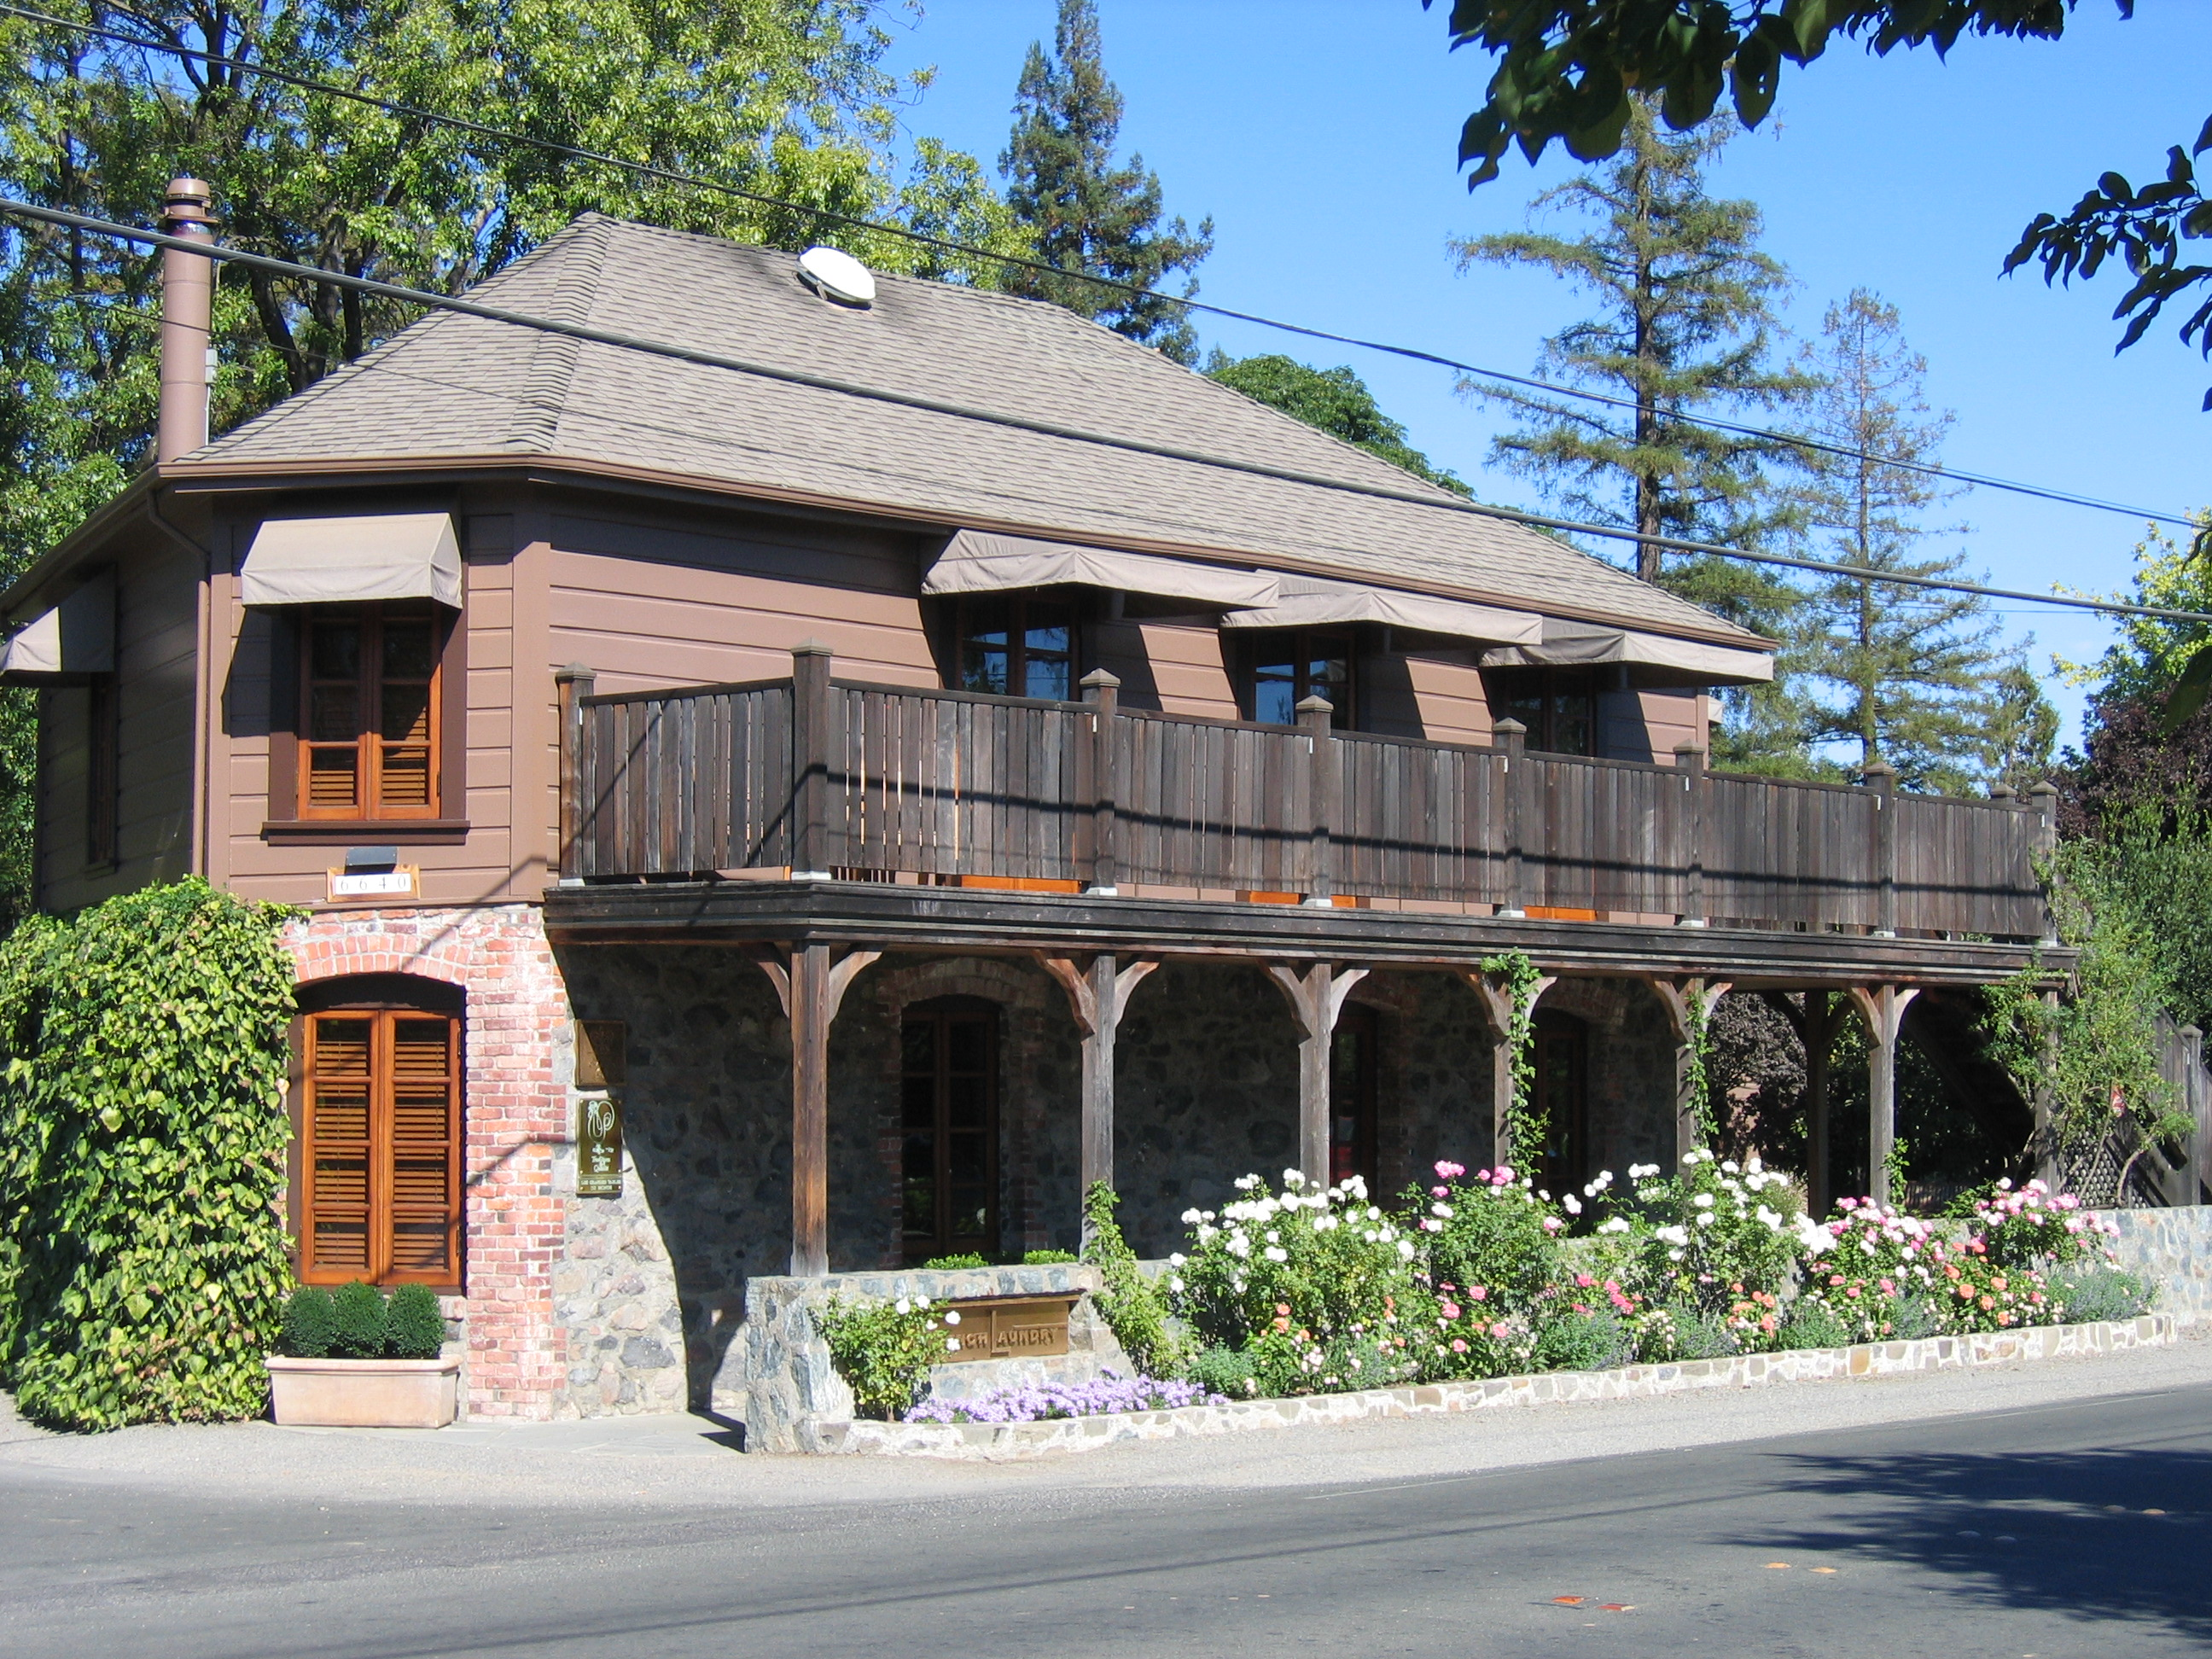 Street view of the French Laundry